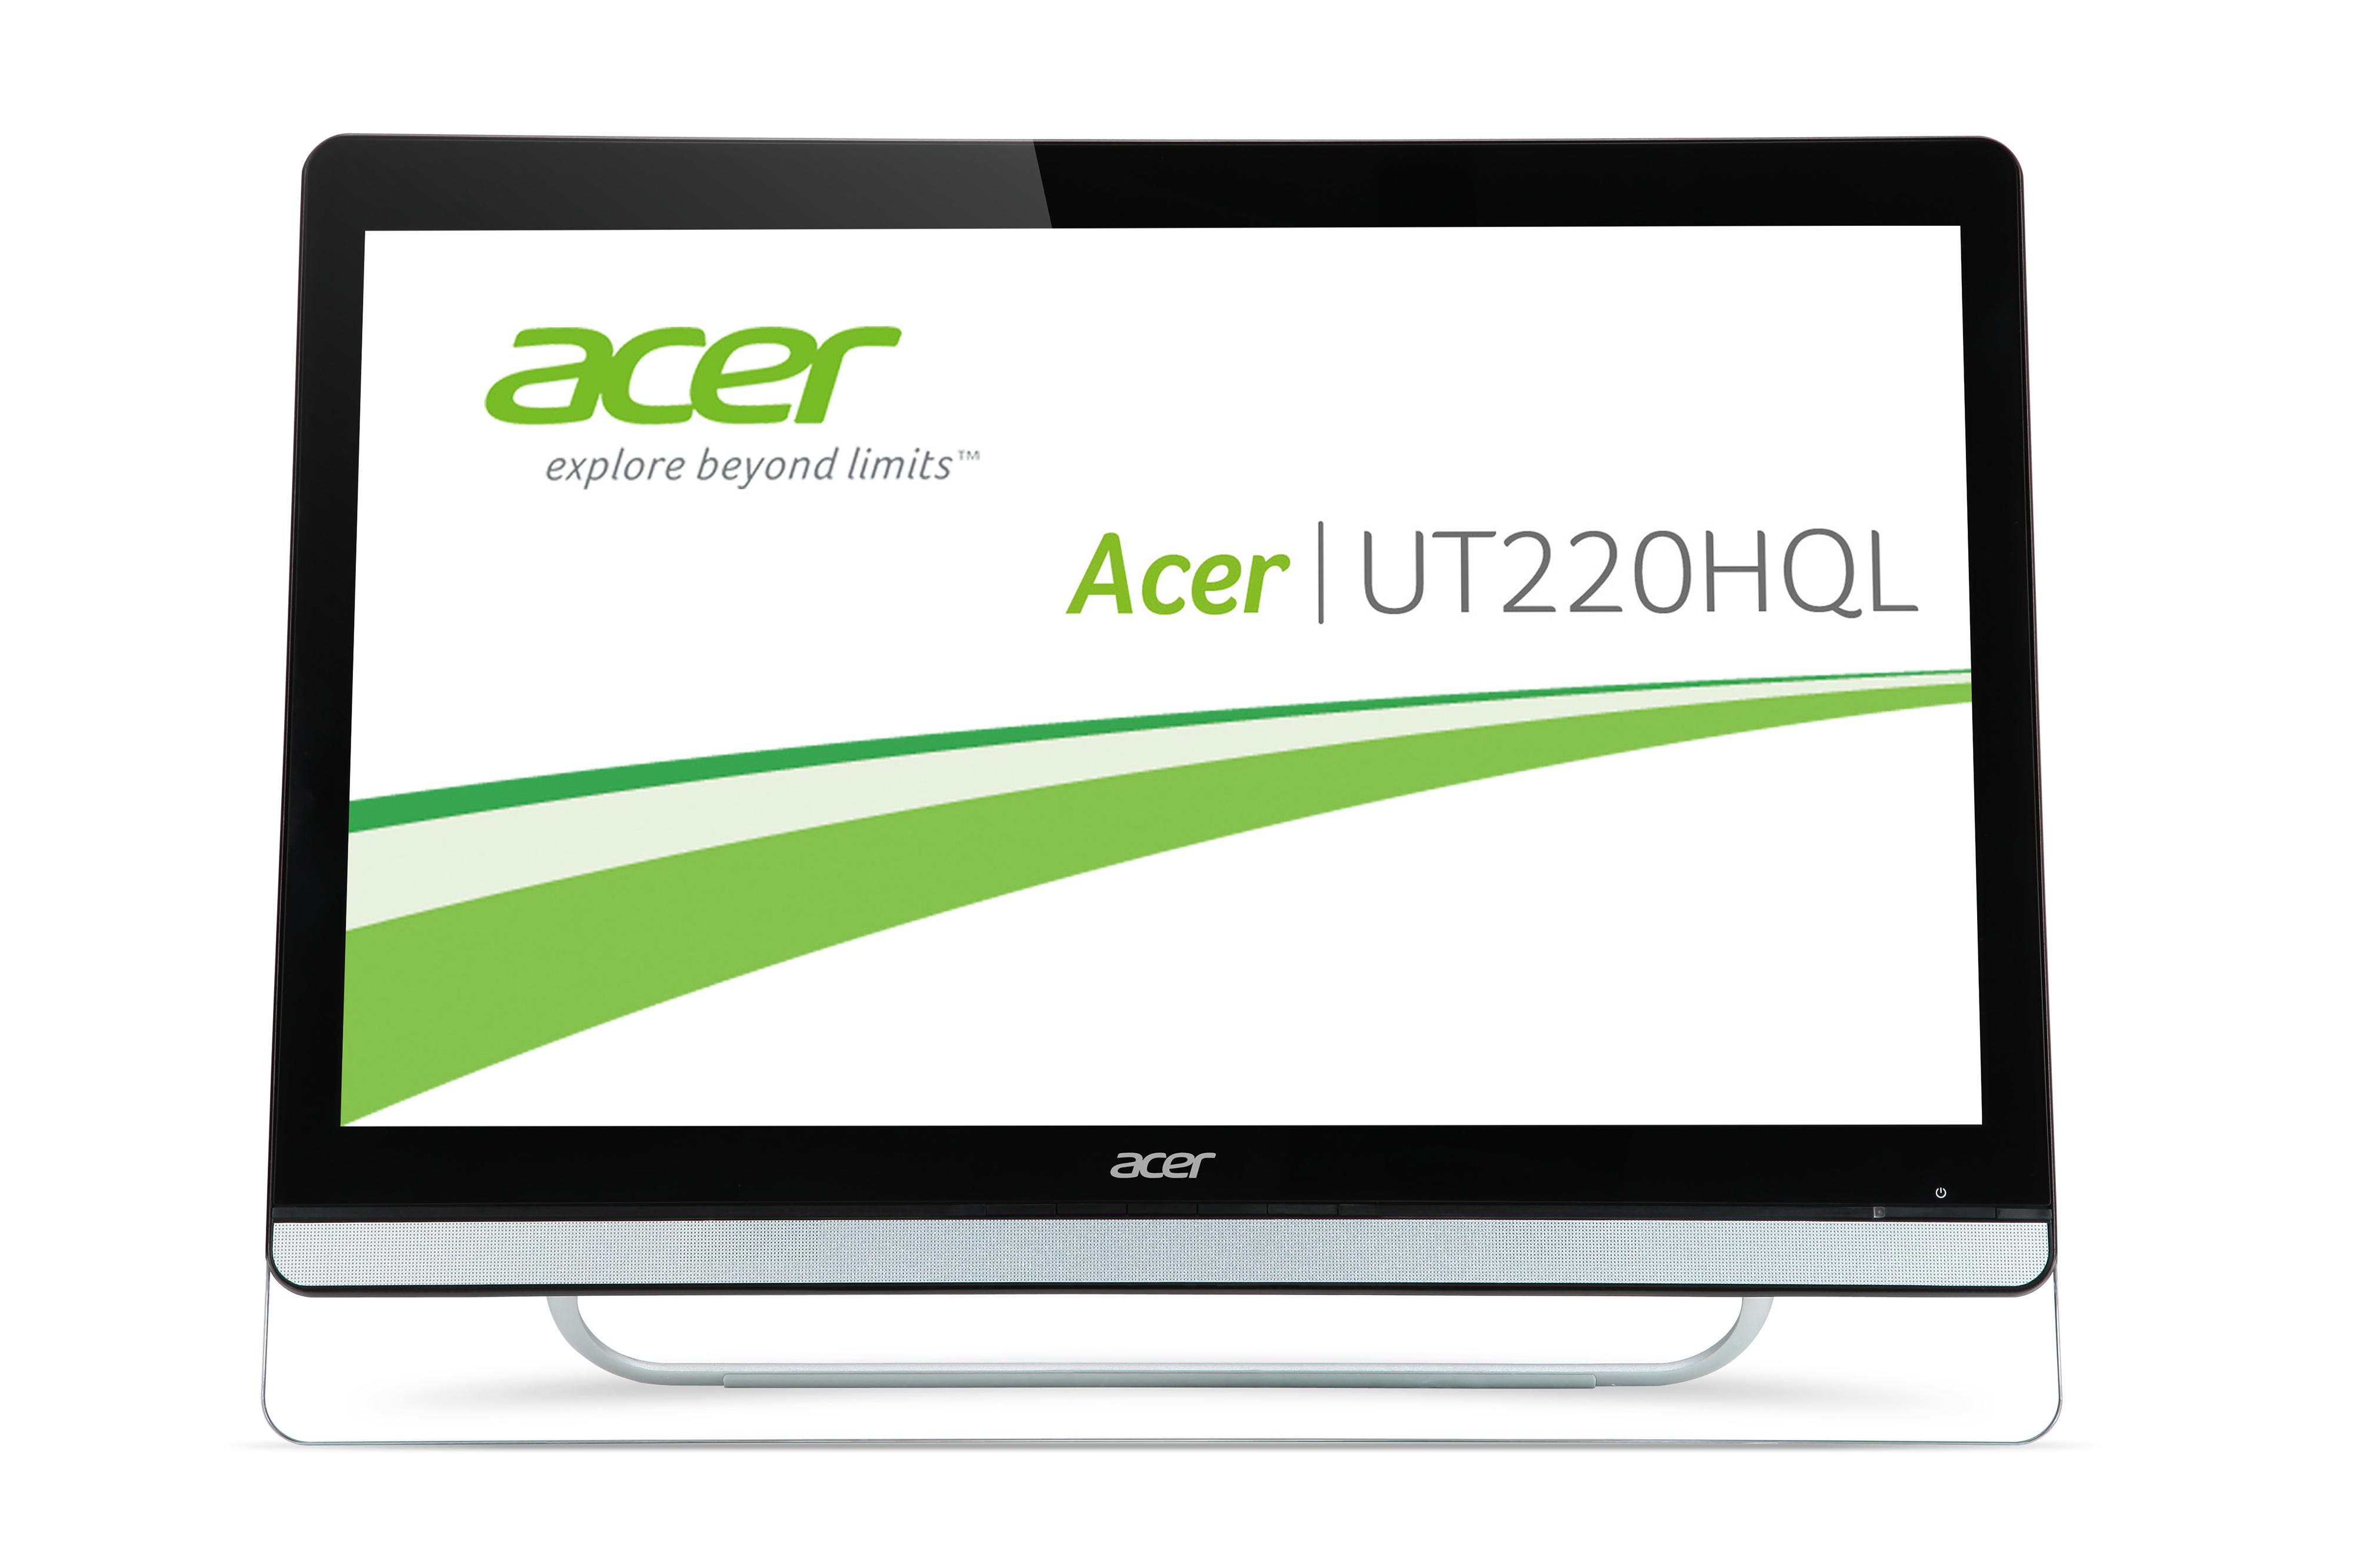 Monitorius Acer UT220HQL - 54.6 cm (21.5'') - 8 ms - 250 cd/m² - Full HD - 1920 x - Monitoriai